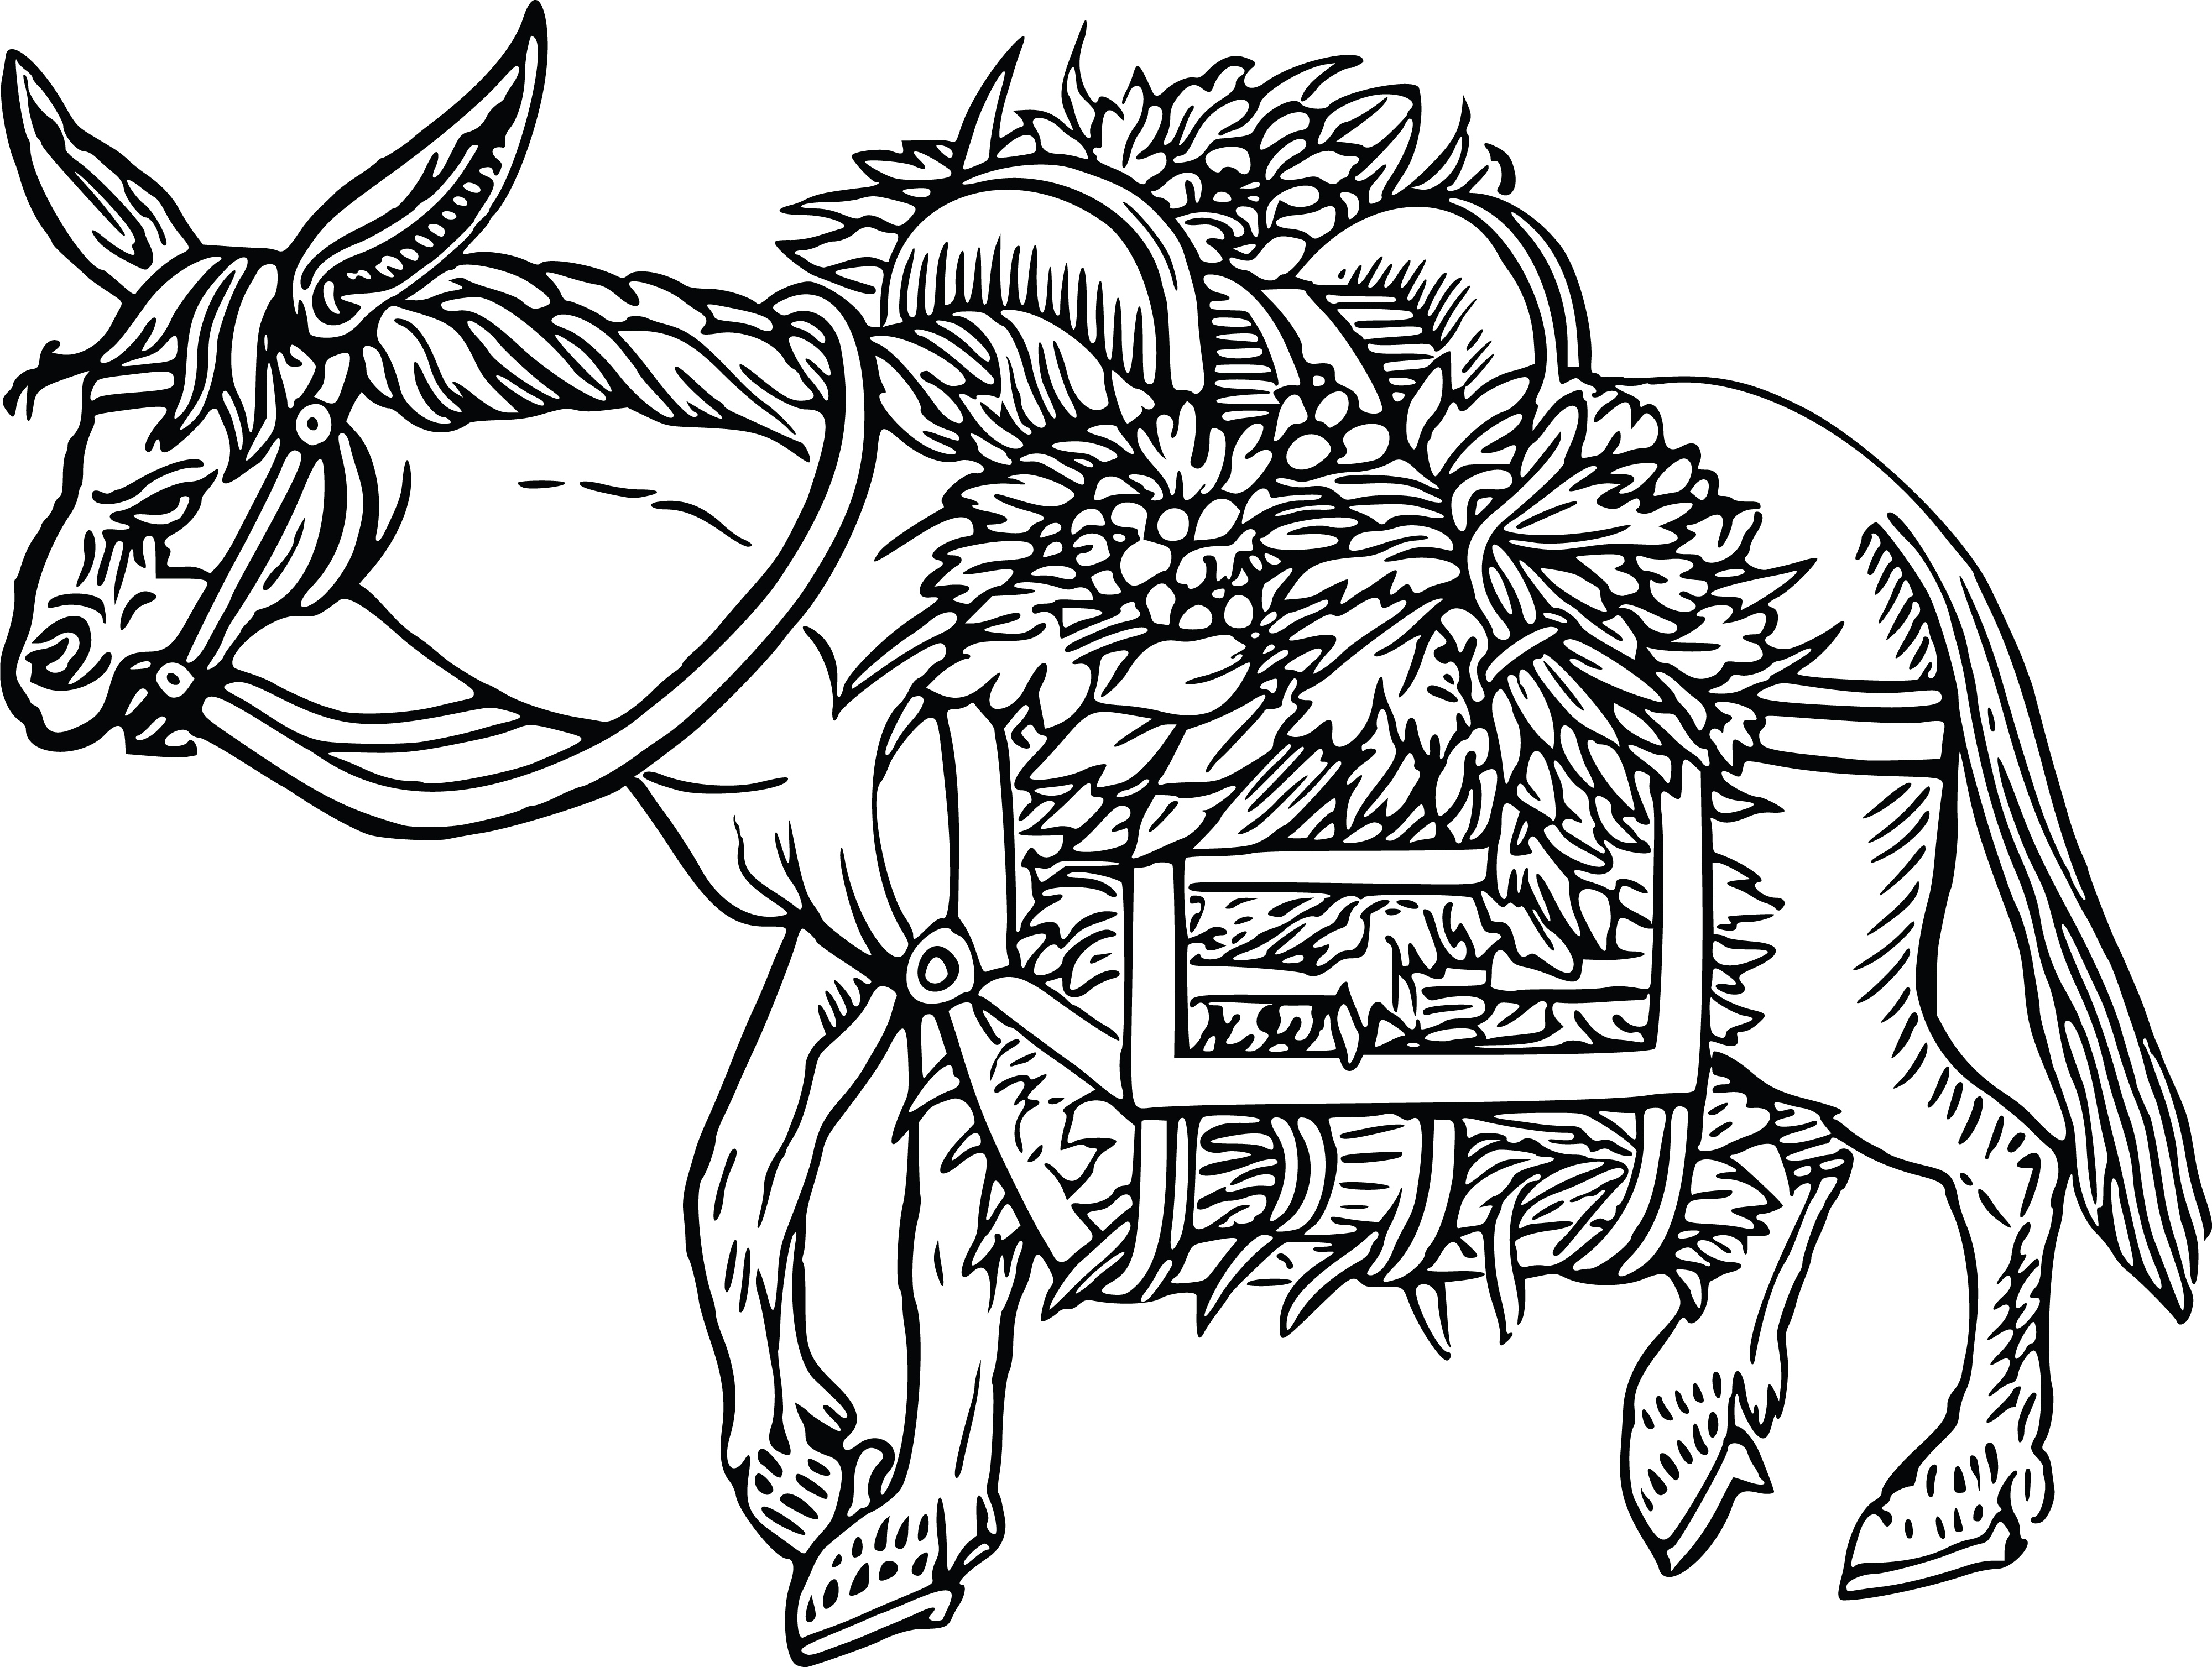 Free Clipart Of A black and white donkey carrying flowers.